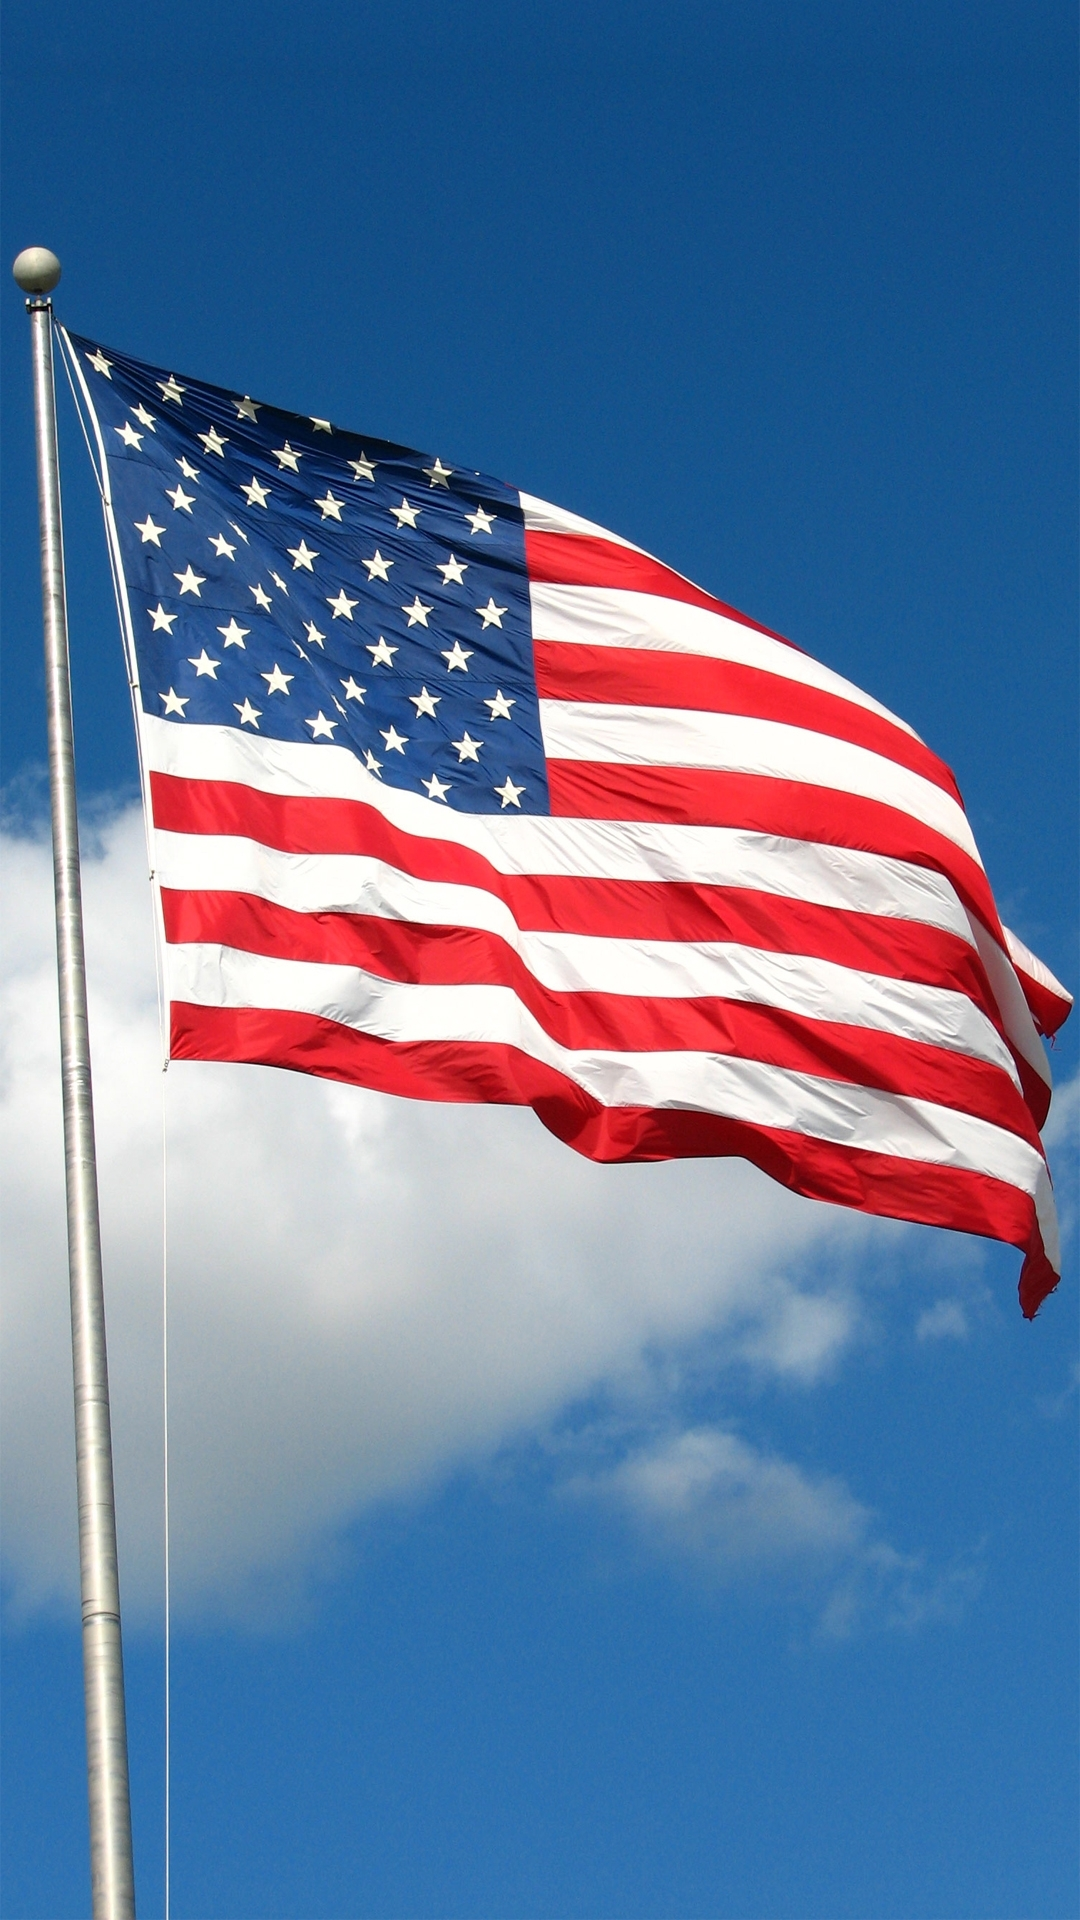 usa american flag sky android wallpaper free download